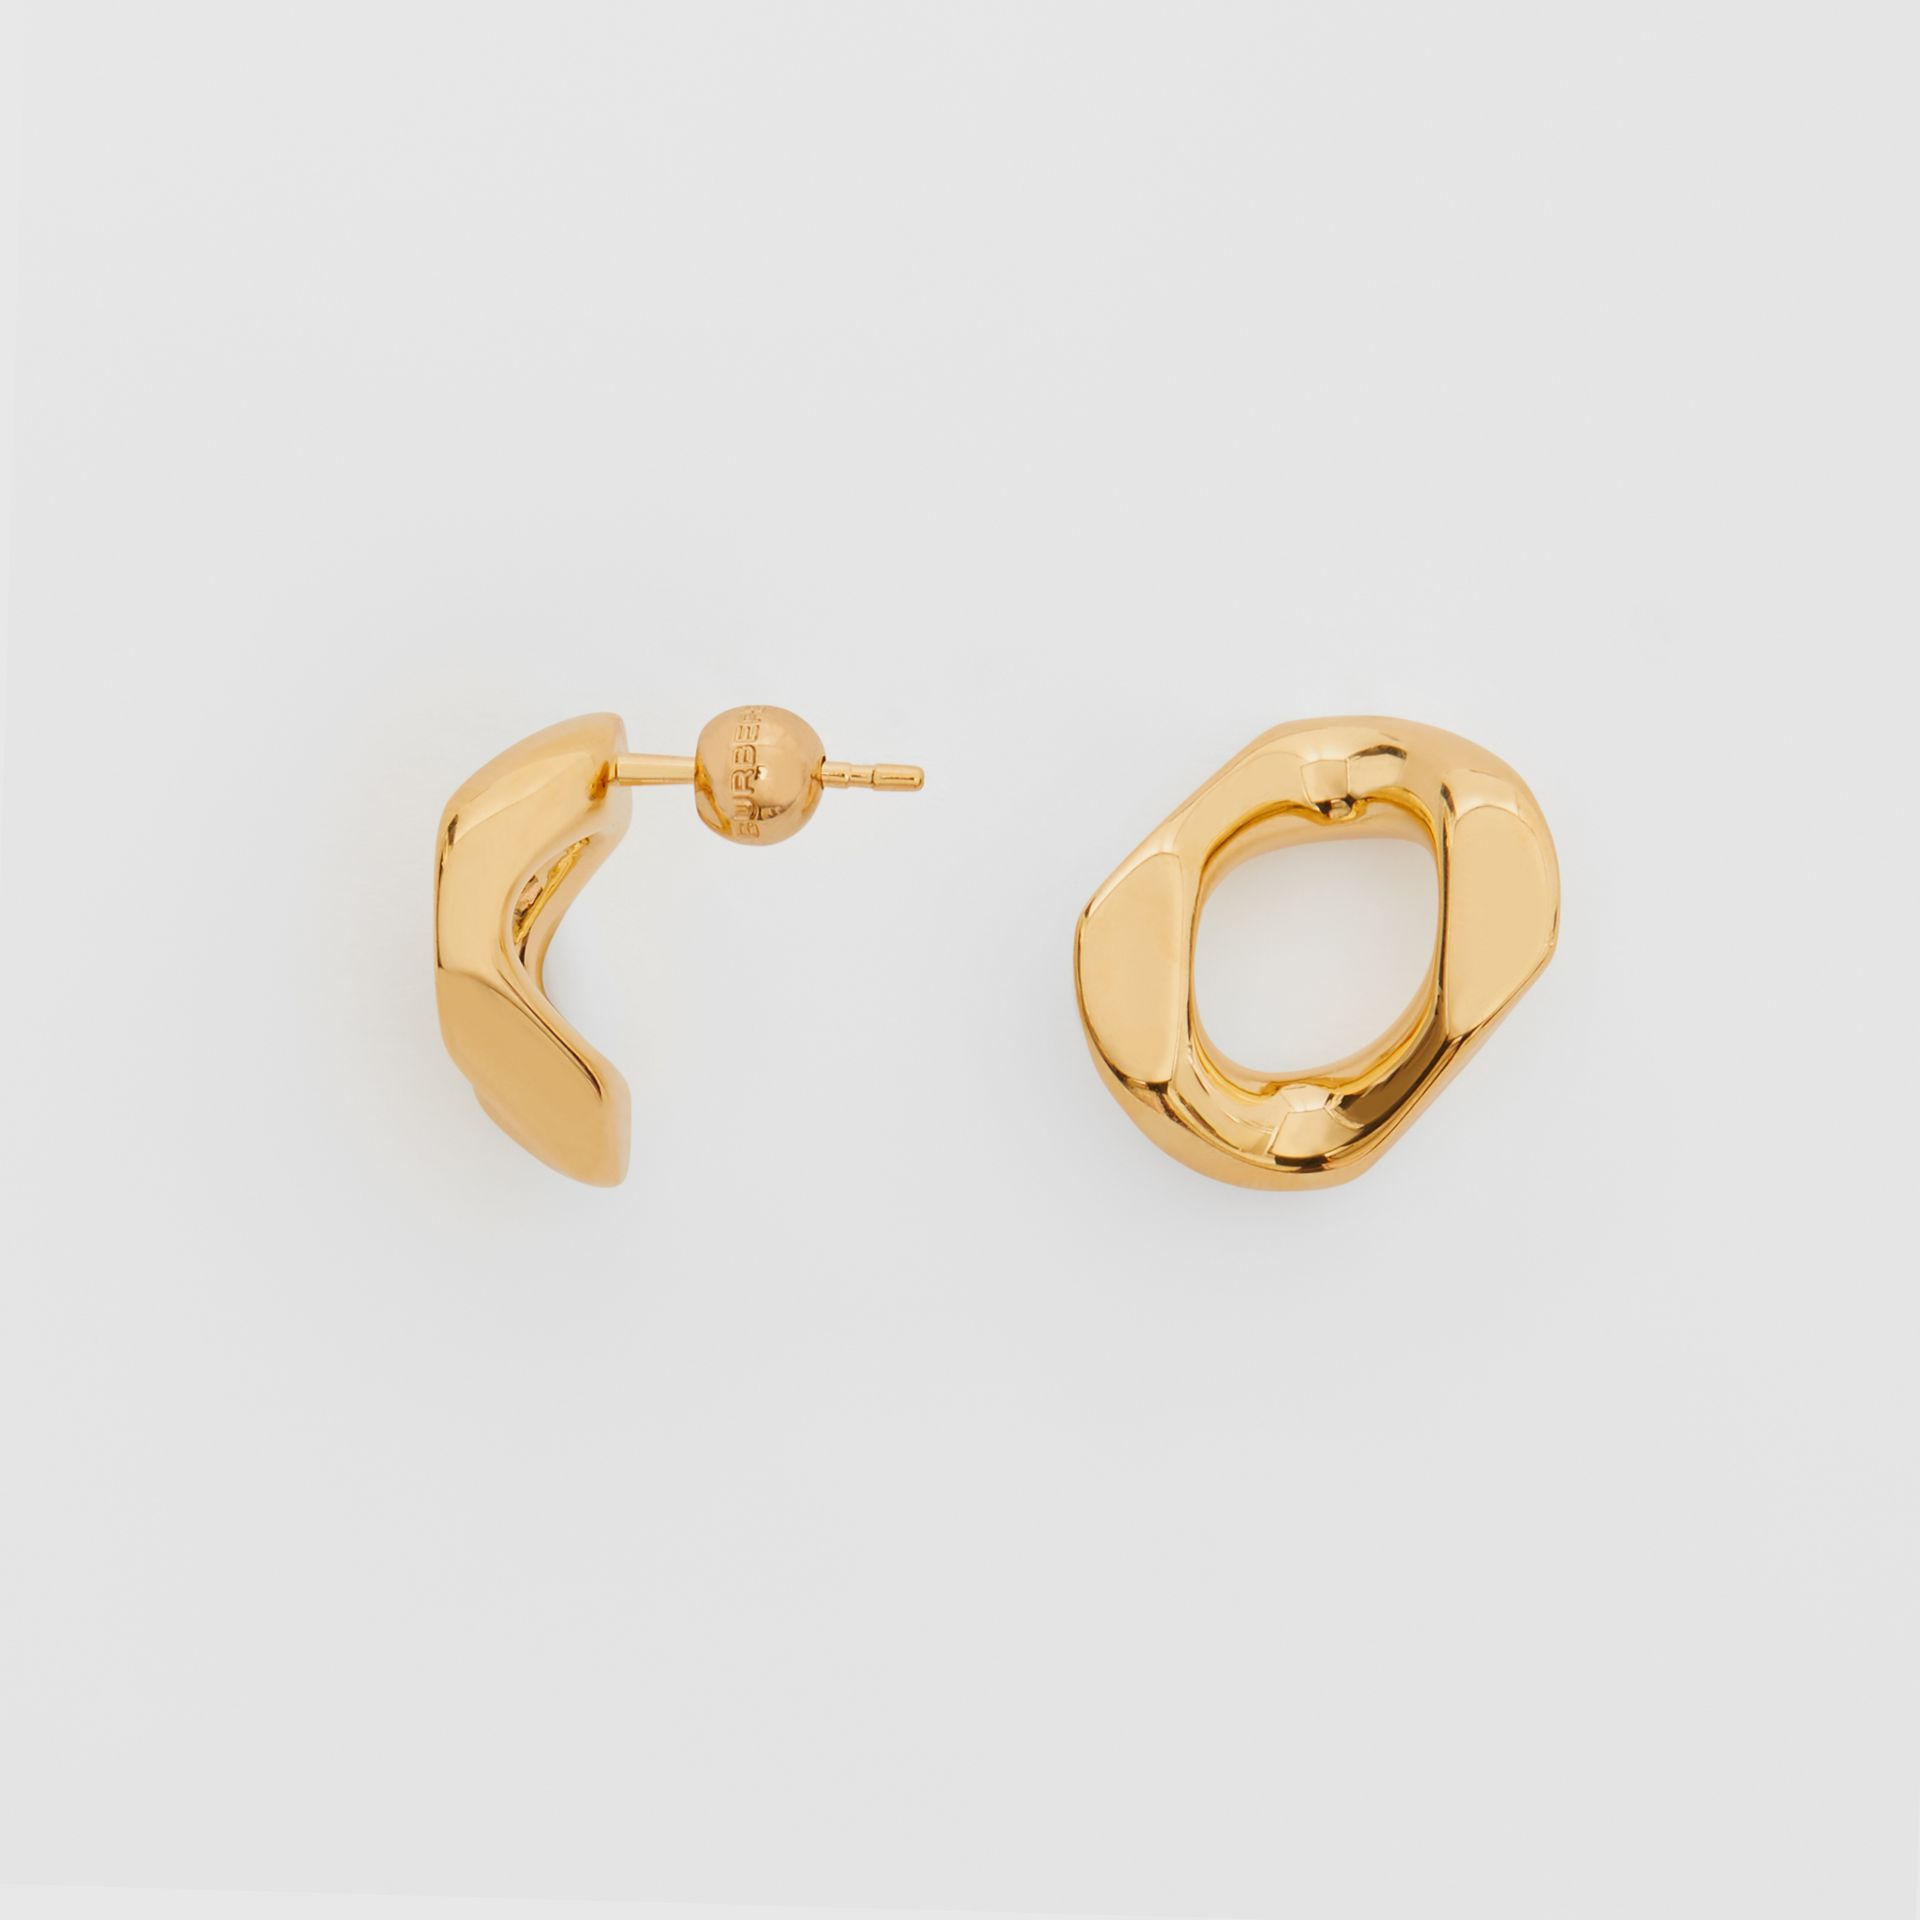 Small Gold-plated Chain Link Earrings in Light - Women | Burberry - gallery image 3